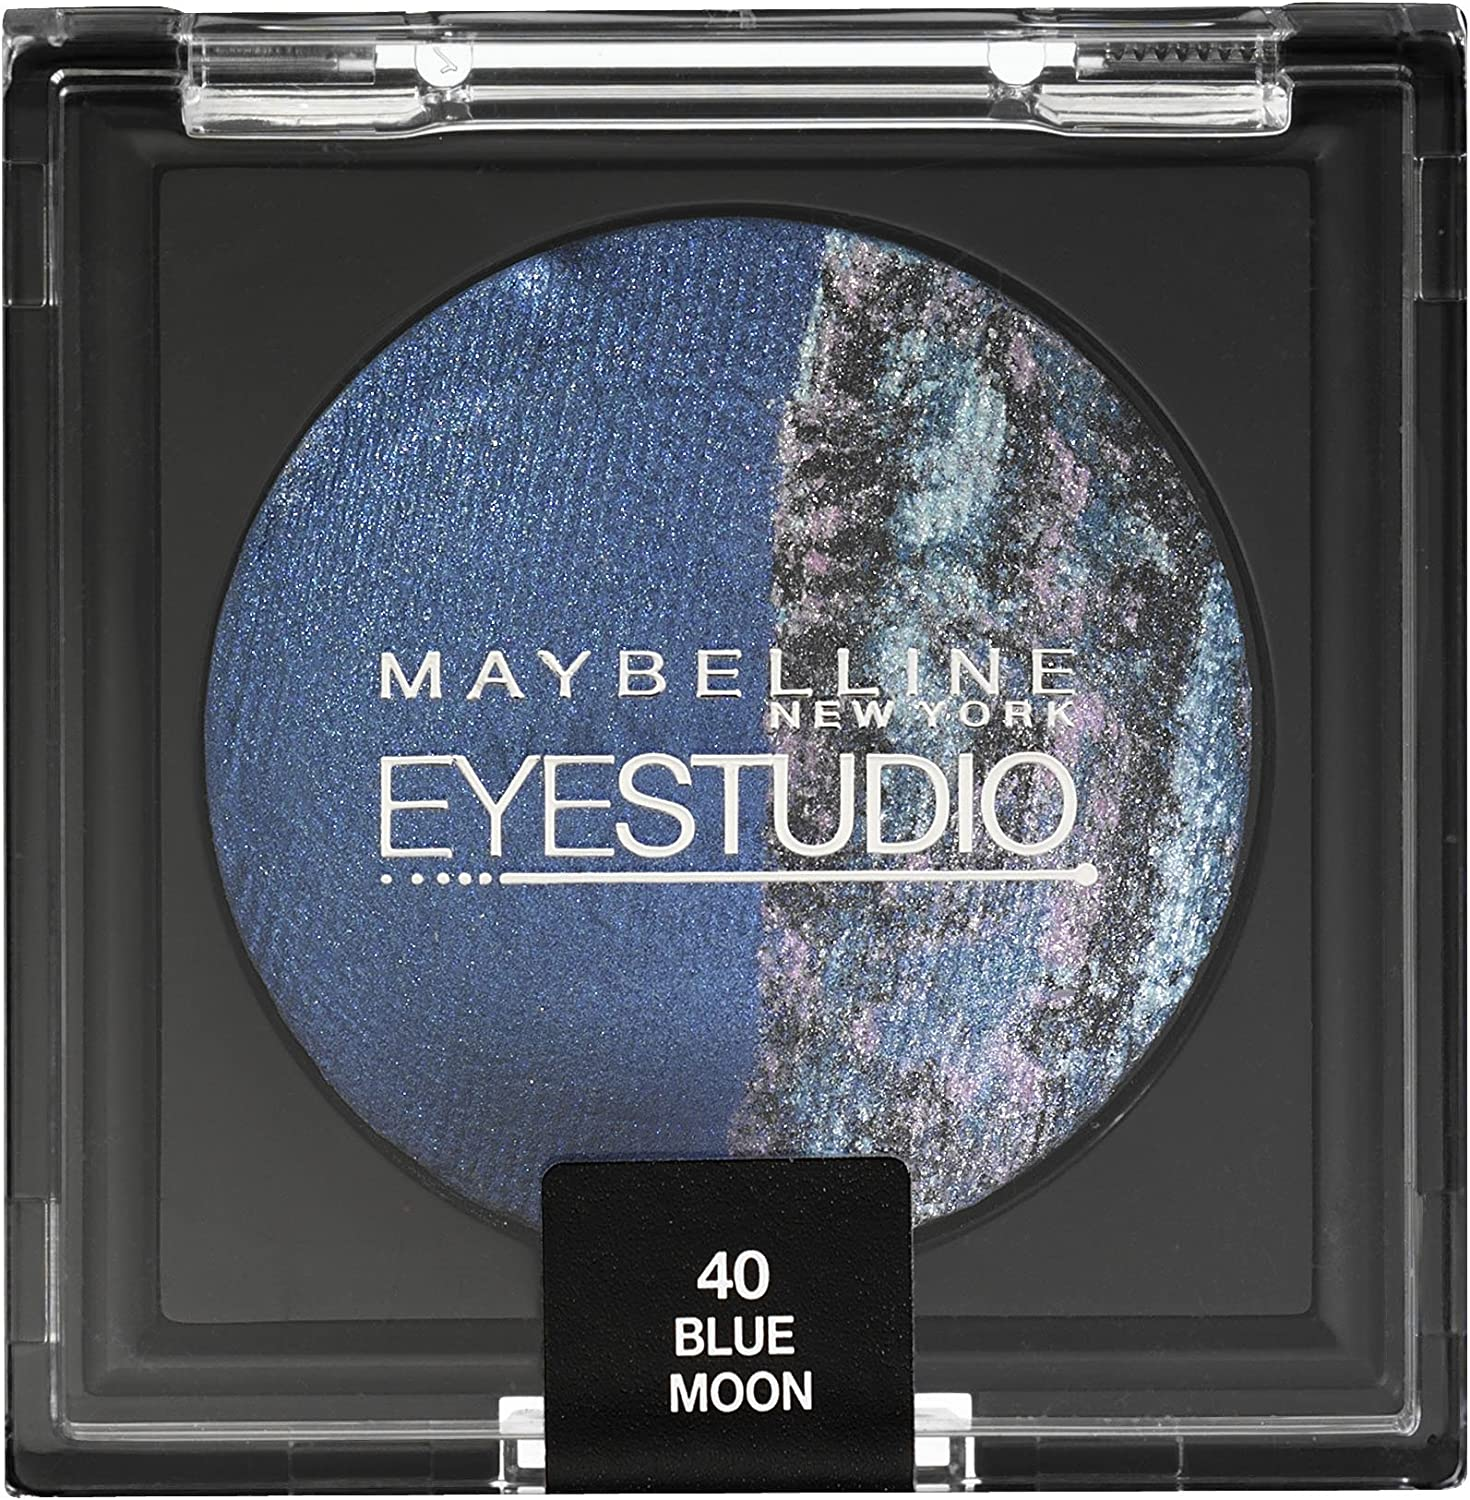 Sombras Maybelline Eye Studio